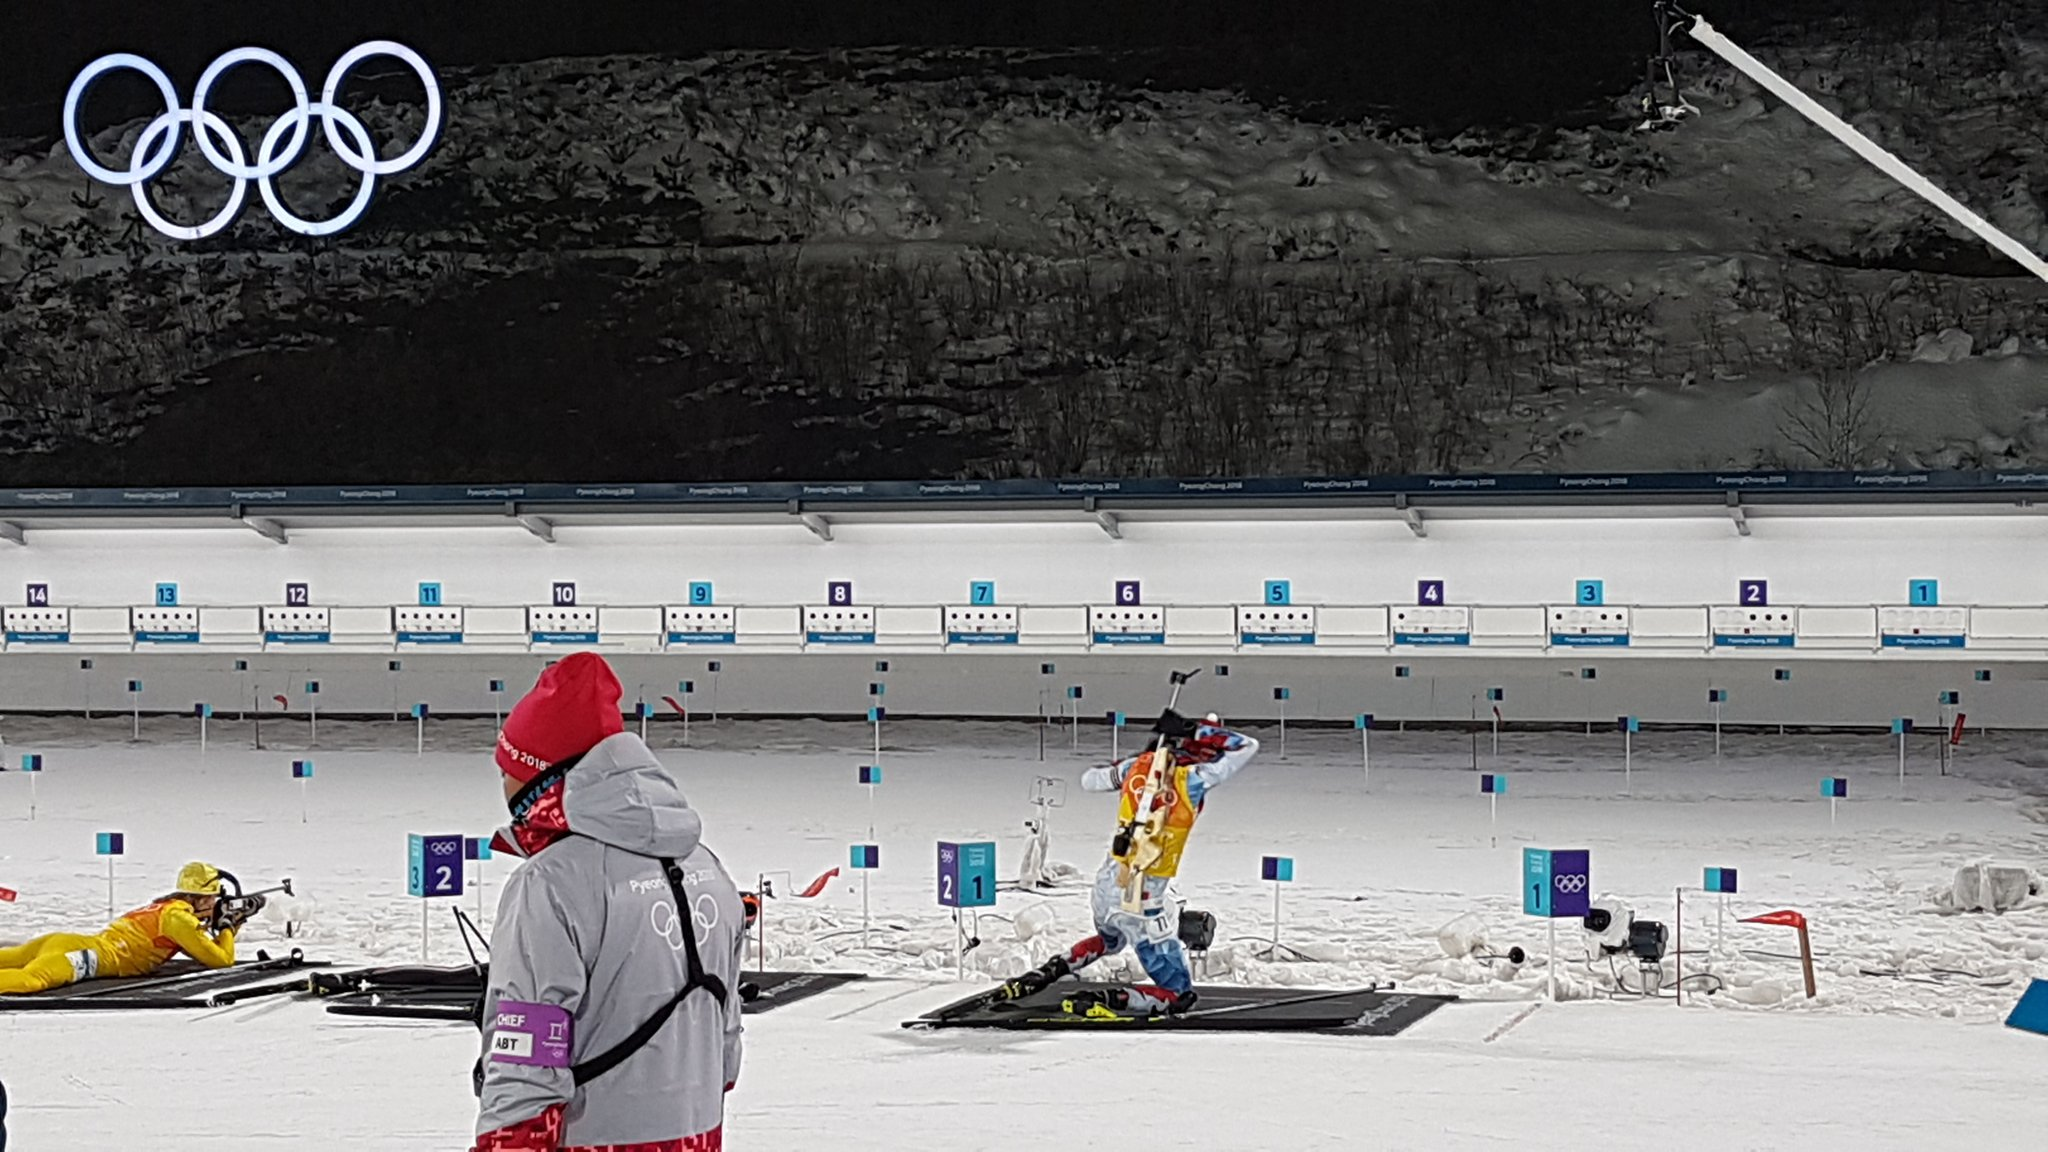 Ibu World Cup On Twitter One Spare And Cze Soukup Keeps The Lead For Olympijskytym But Nor Johannes Thingnes Boe Is With Him Now Biathlon Pyeongchang2018 Https T Co Ccl3pqnoy9